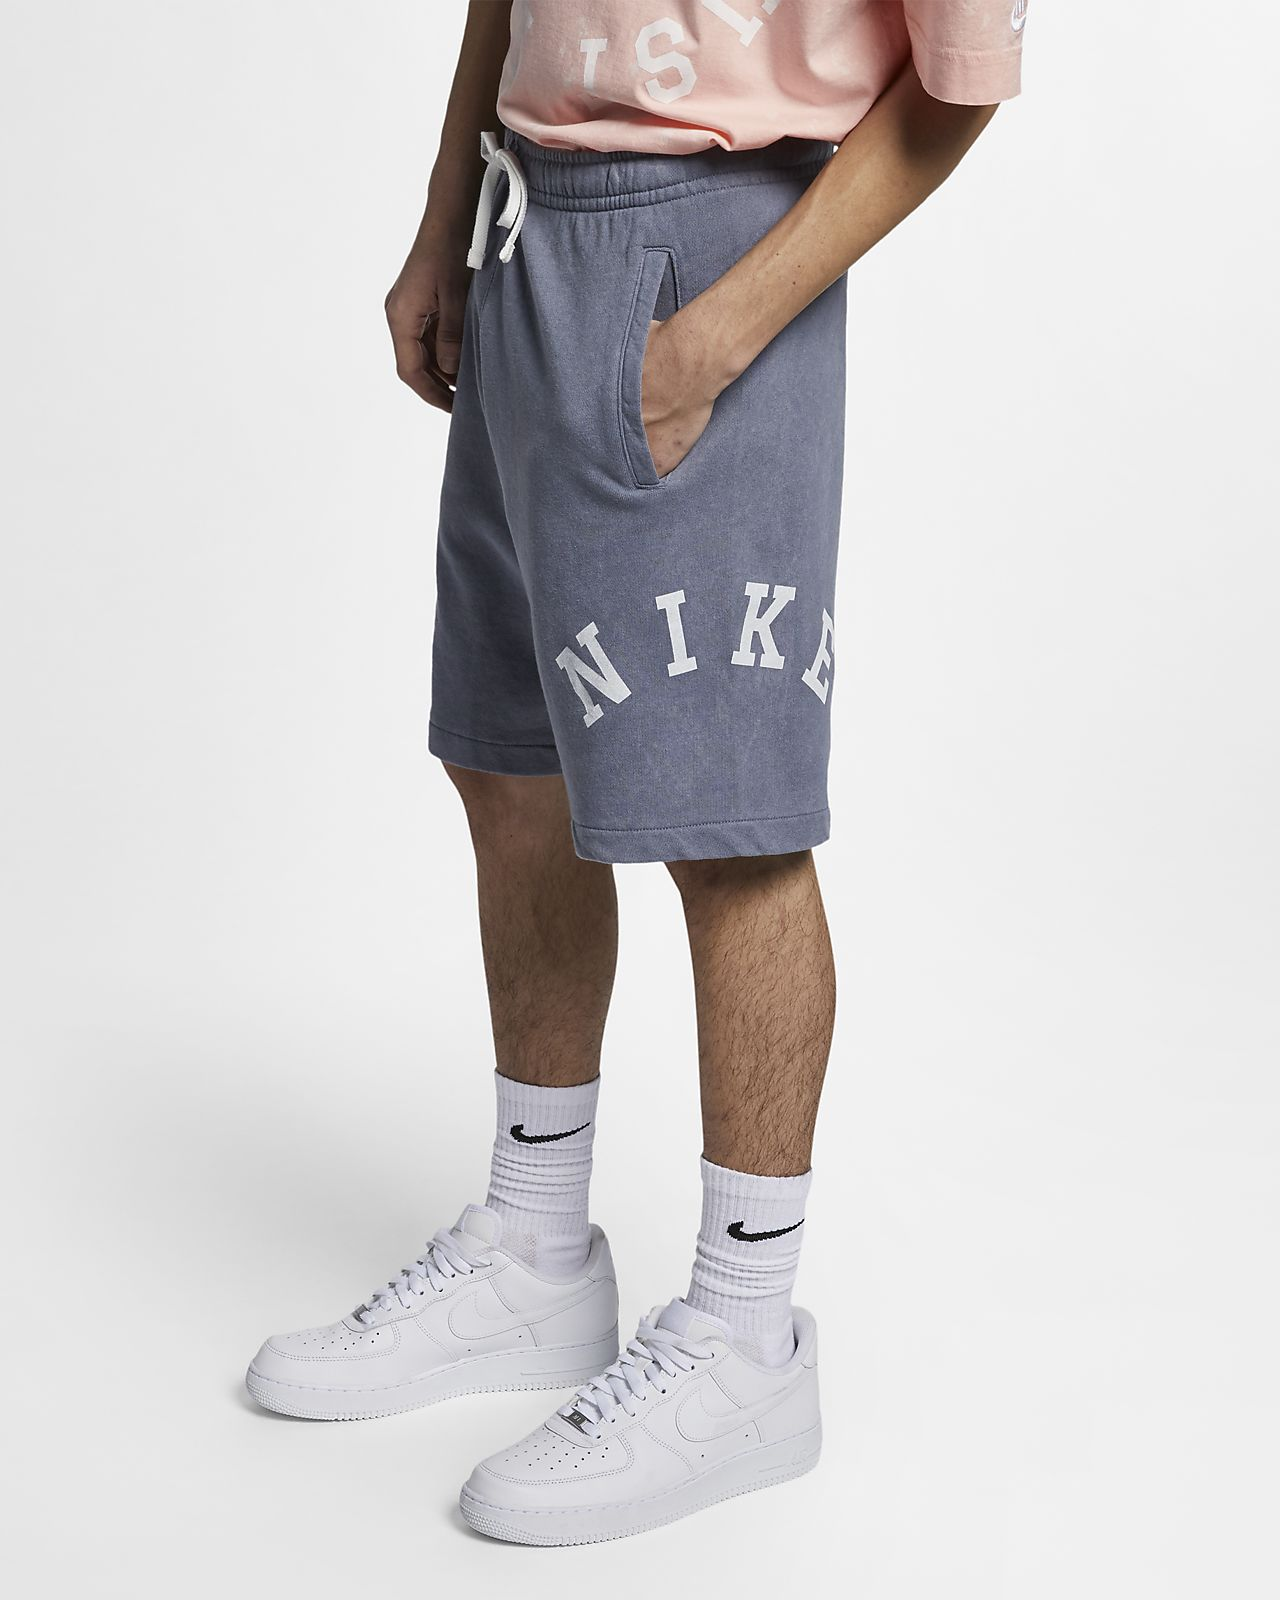 Nike Sportswear French Terry Shorts